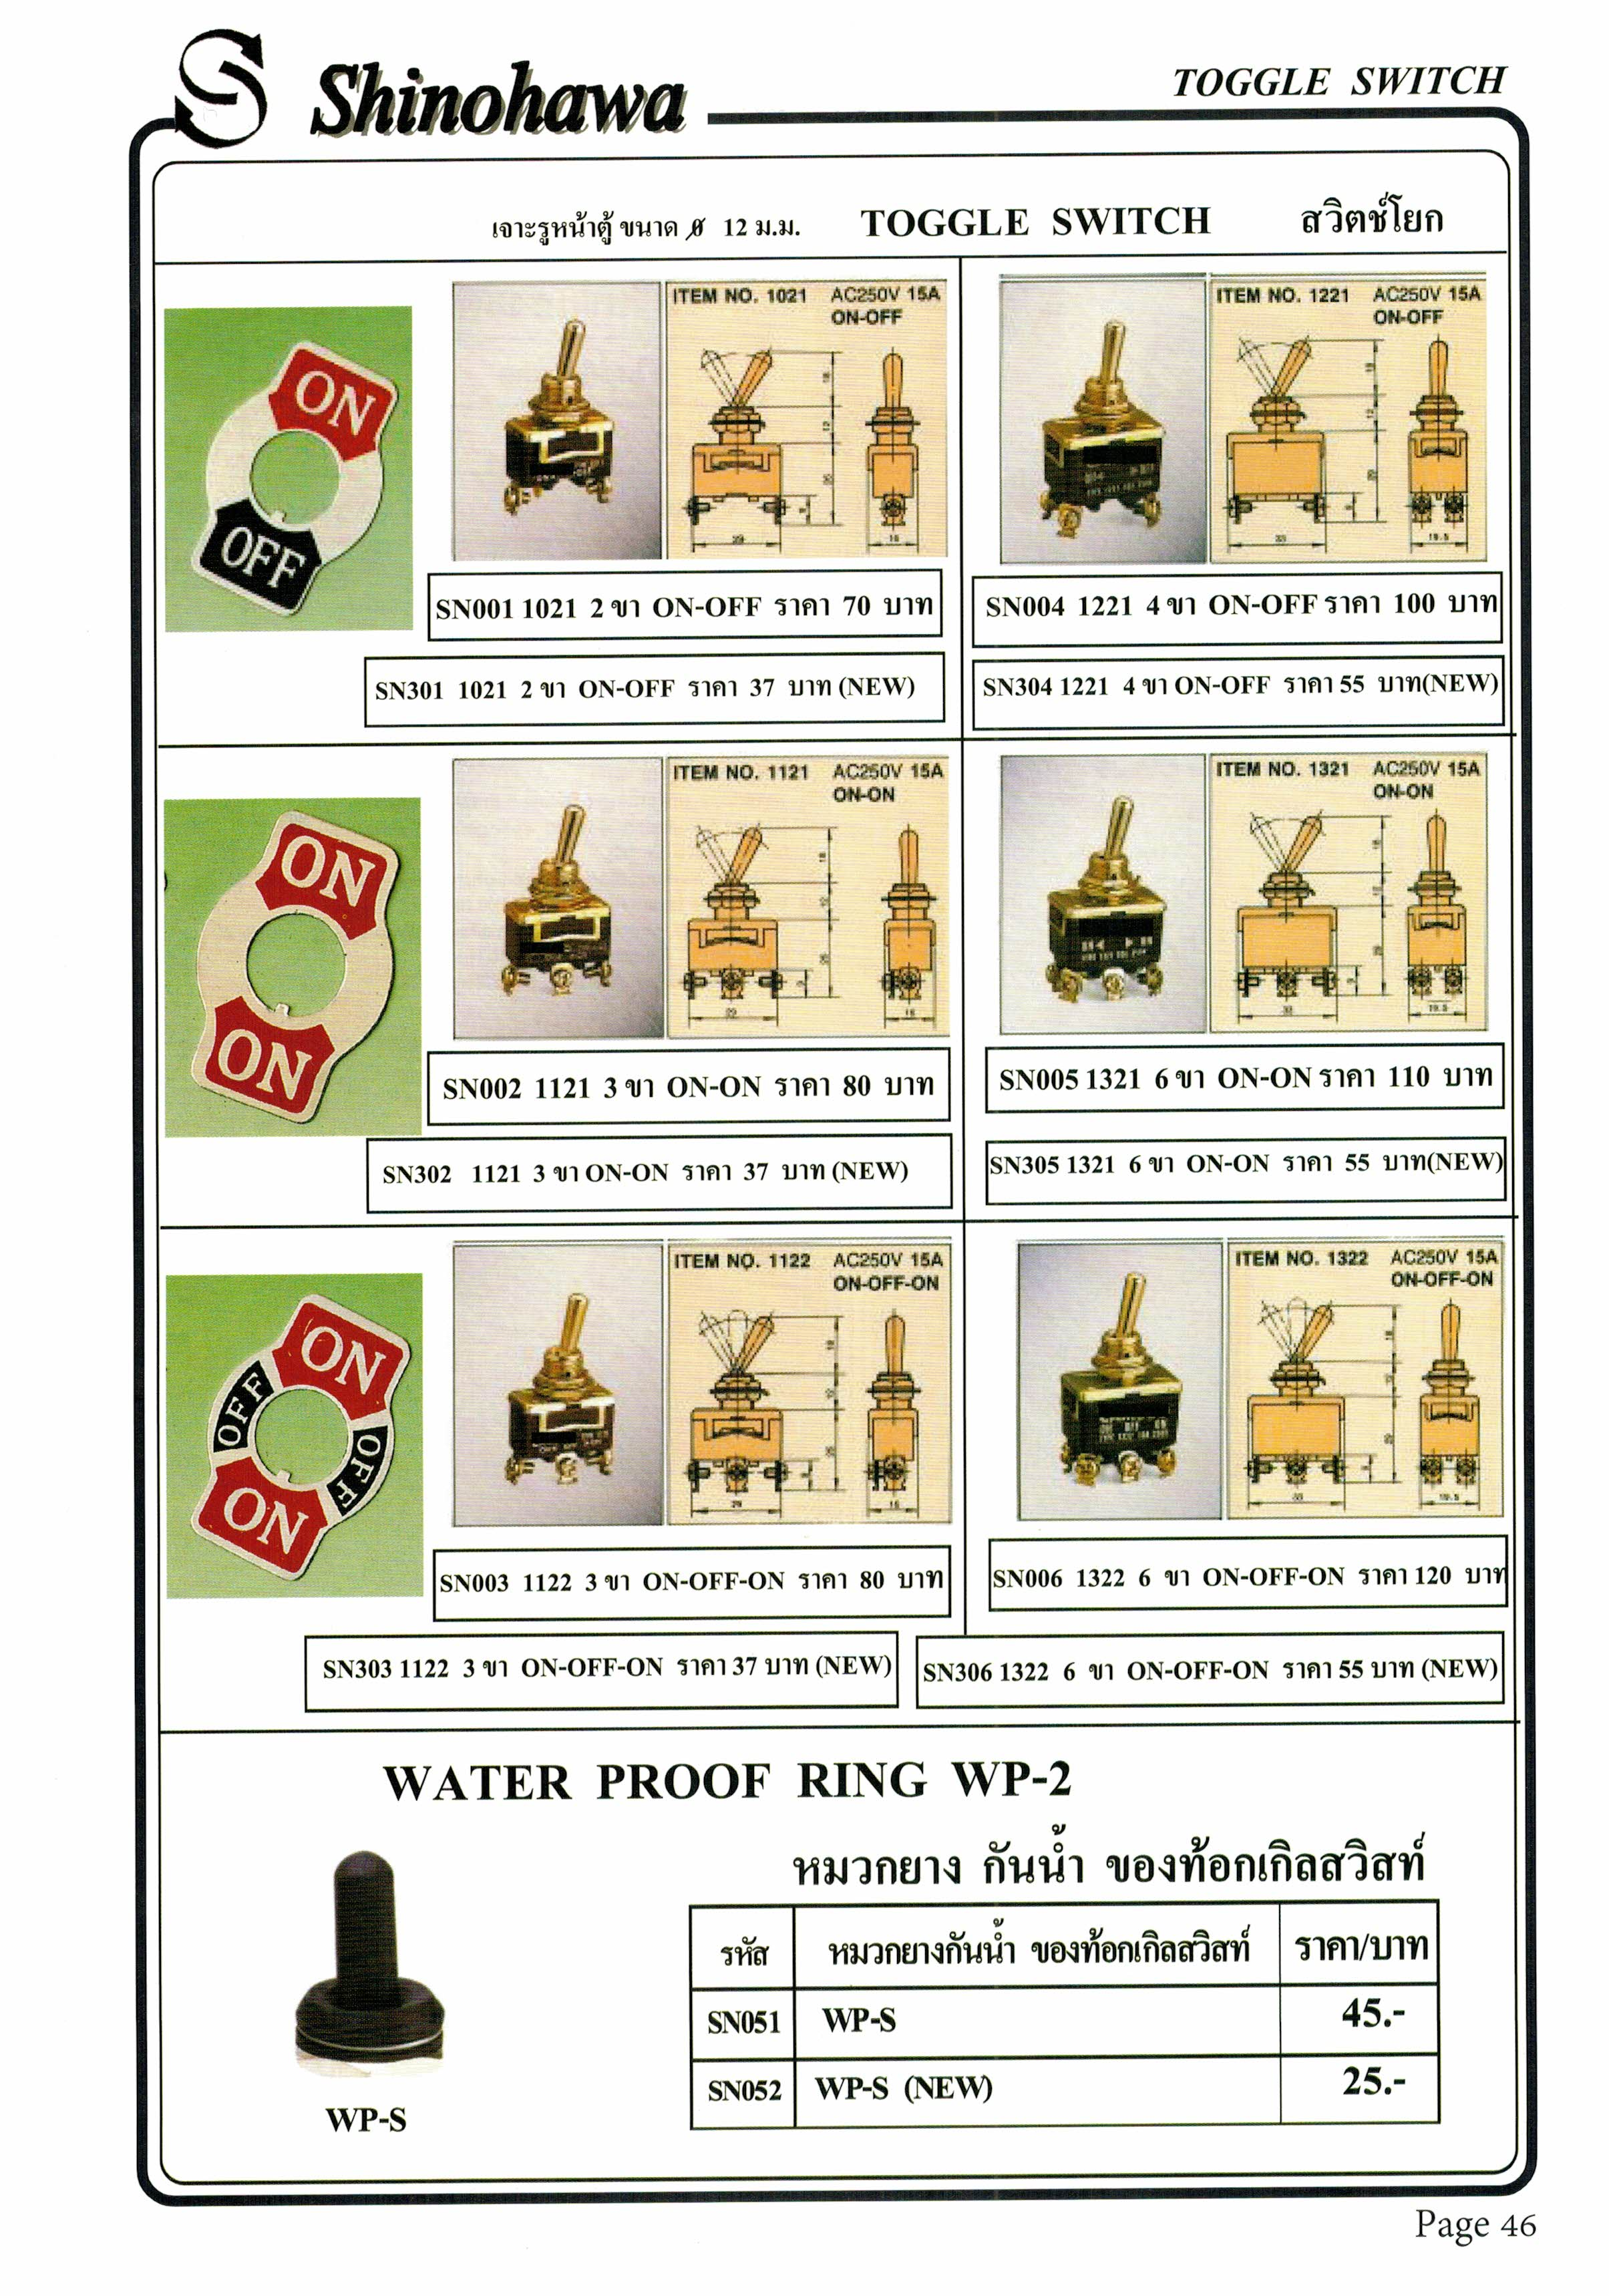 Toggle Switch Water Proof Ring Wp 2 Bscg No